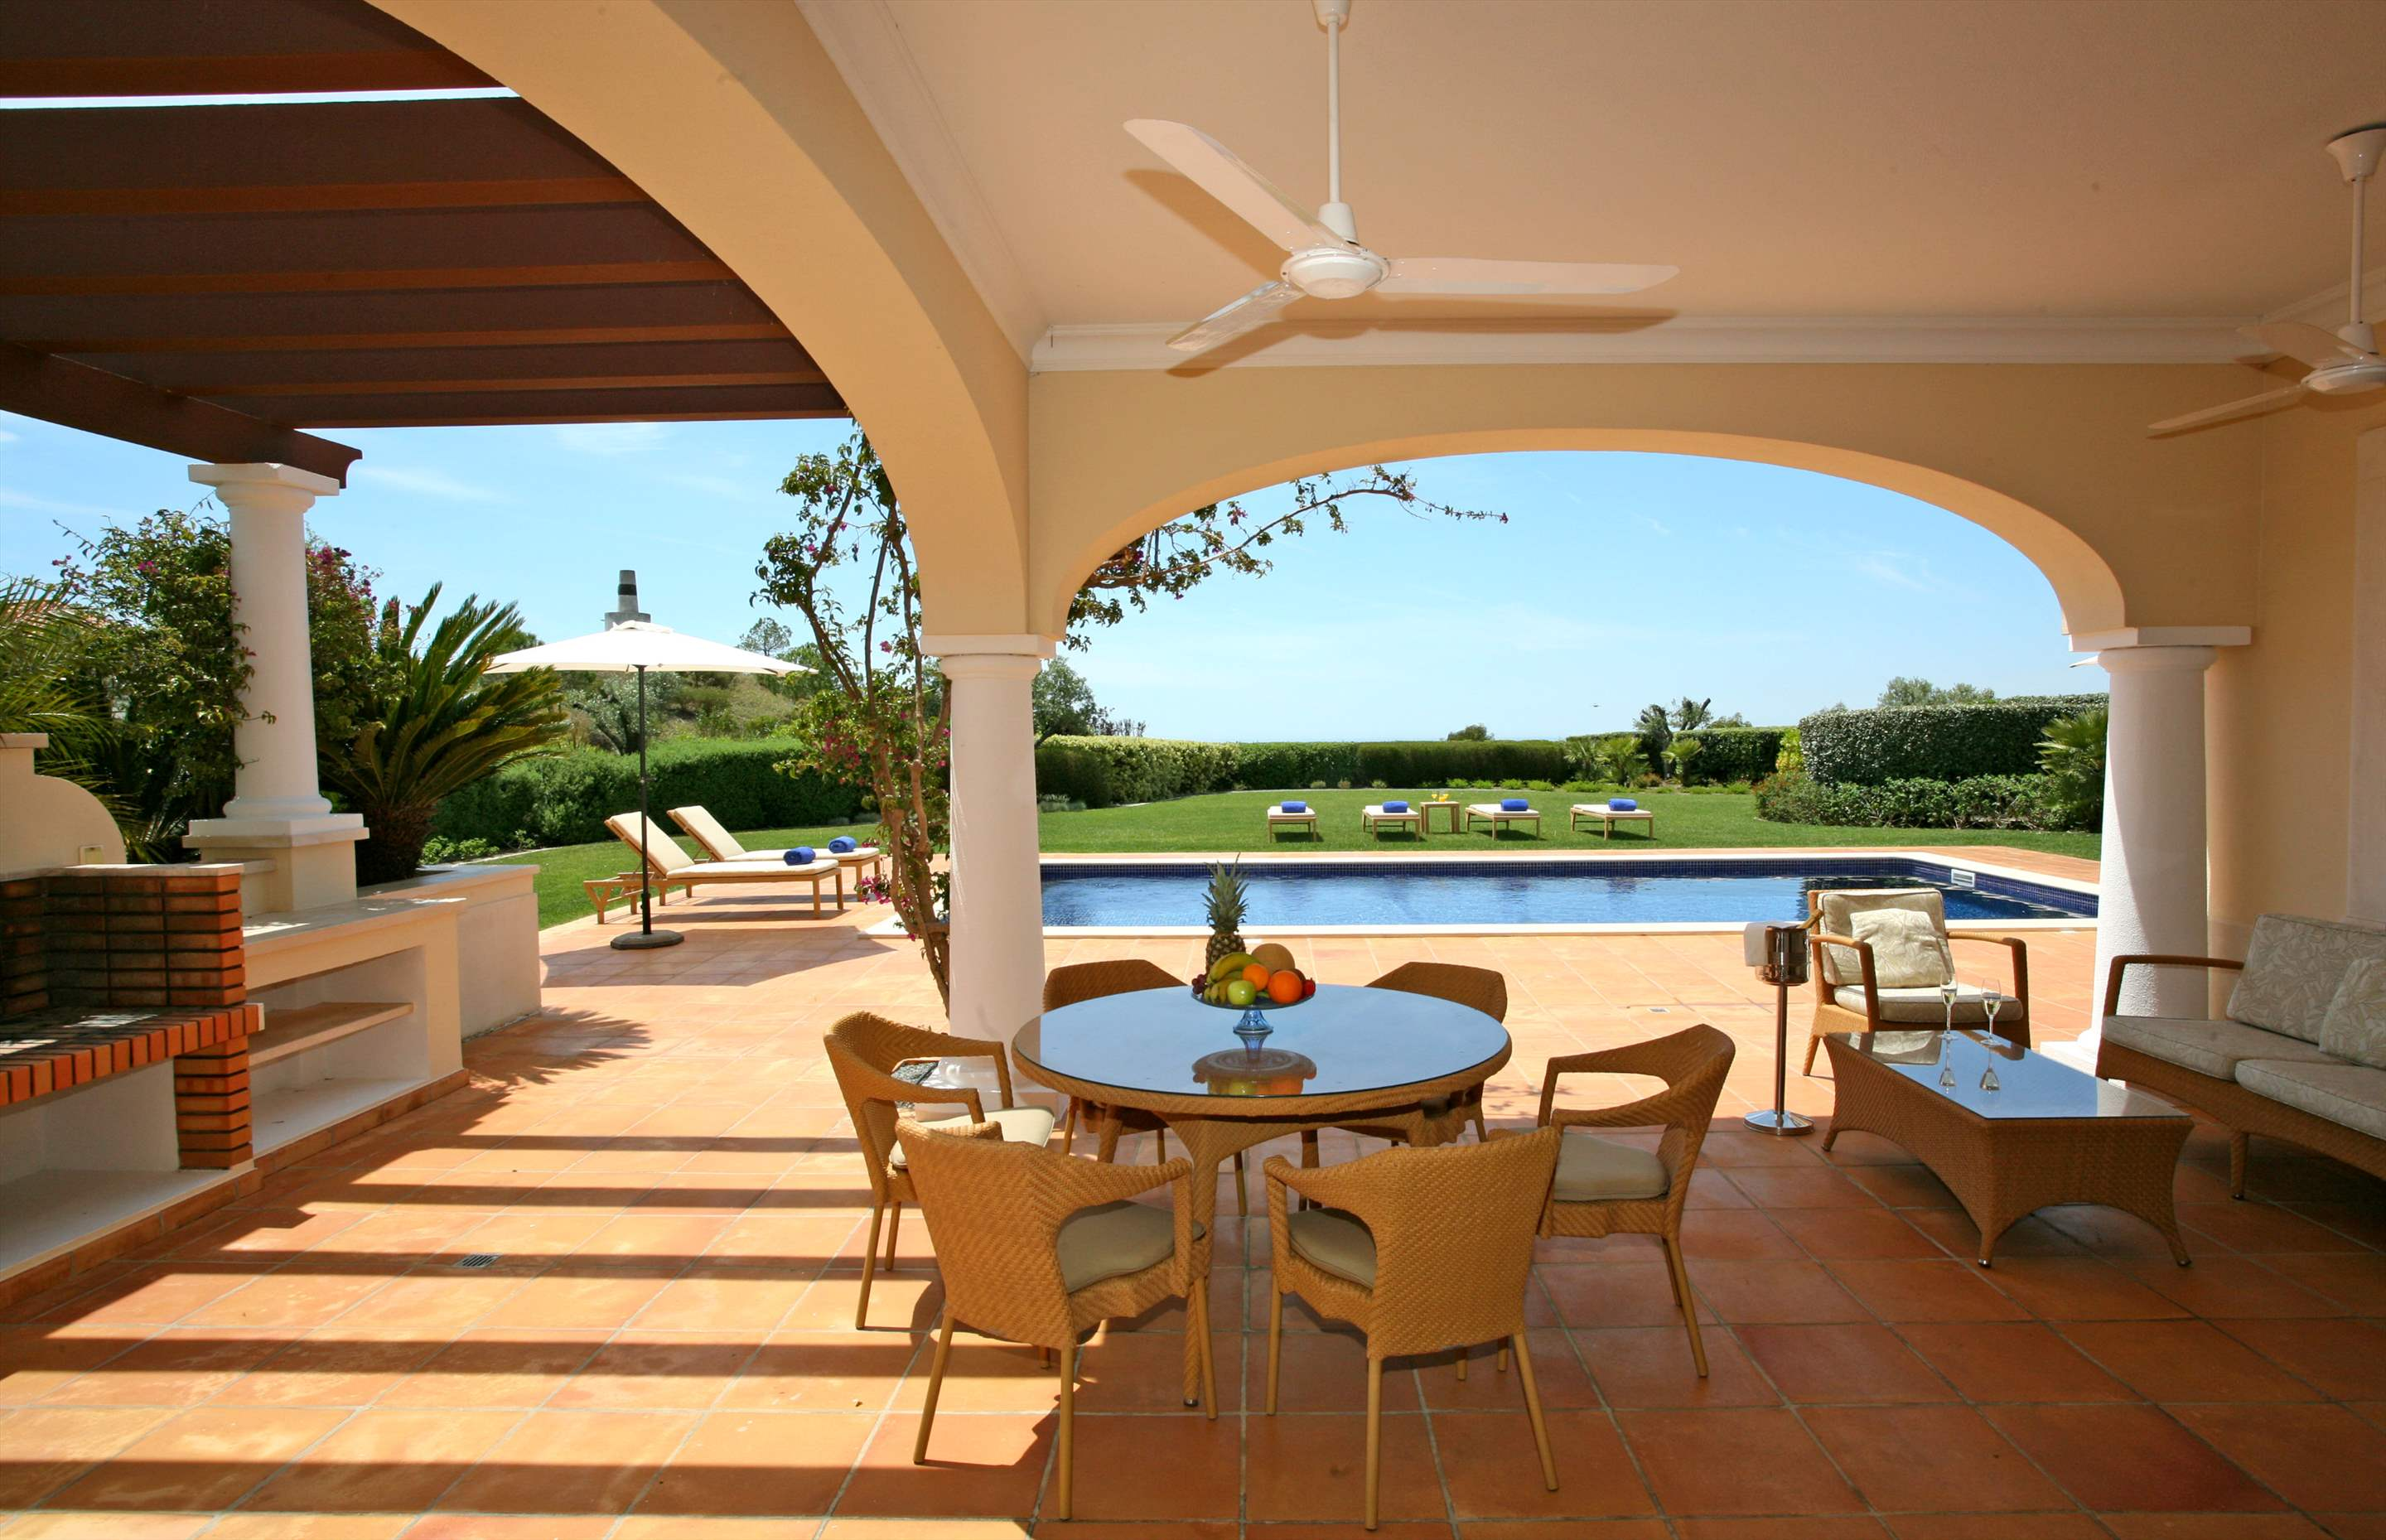 Monte Rei Three Bedroom Villa with Private Pool, 3 bedroom villa in Monte Rei Country Club, Algarve Photo #2